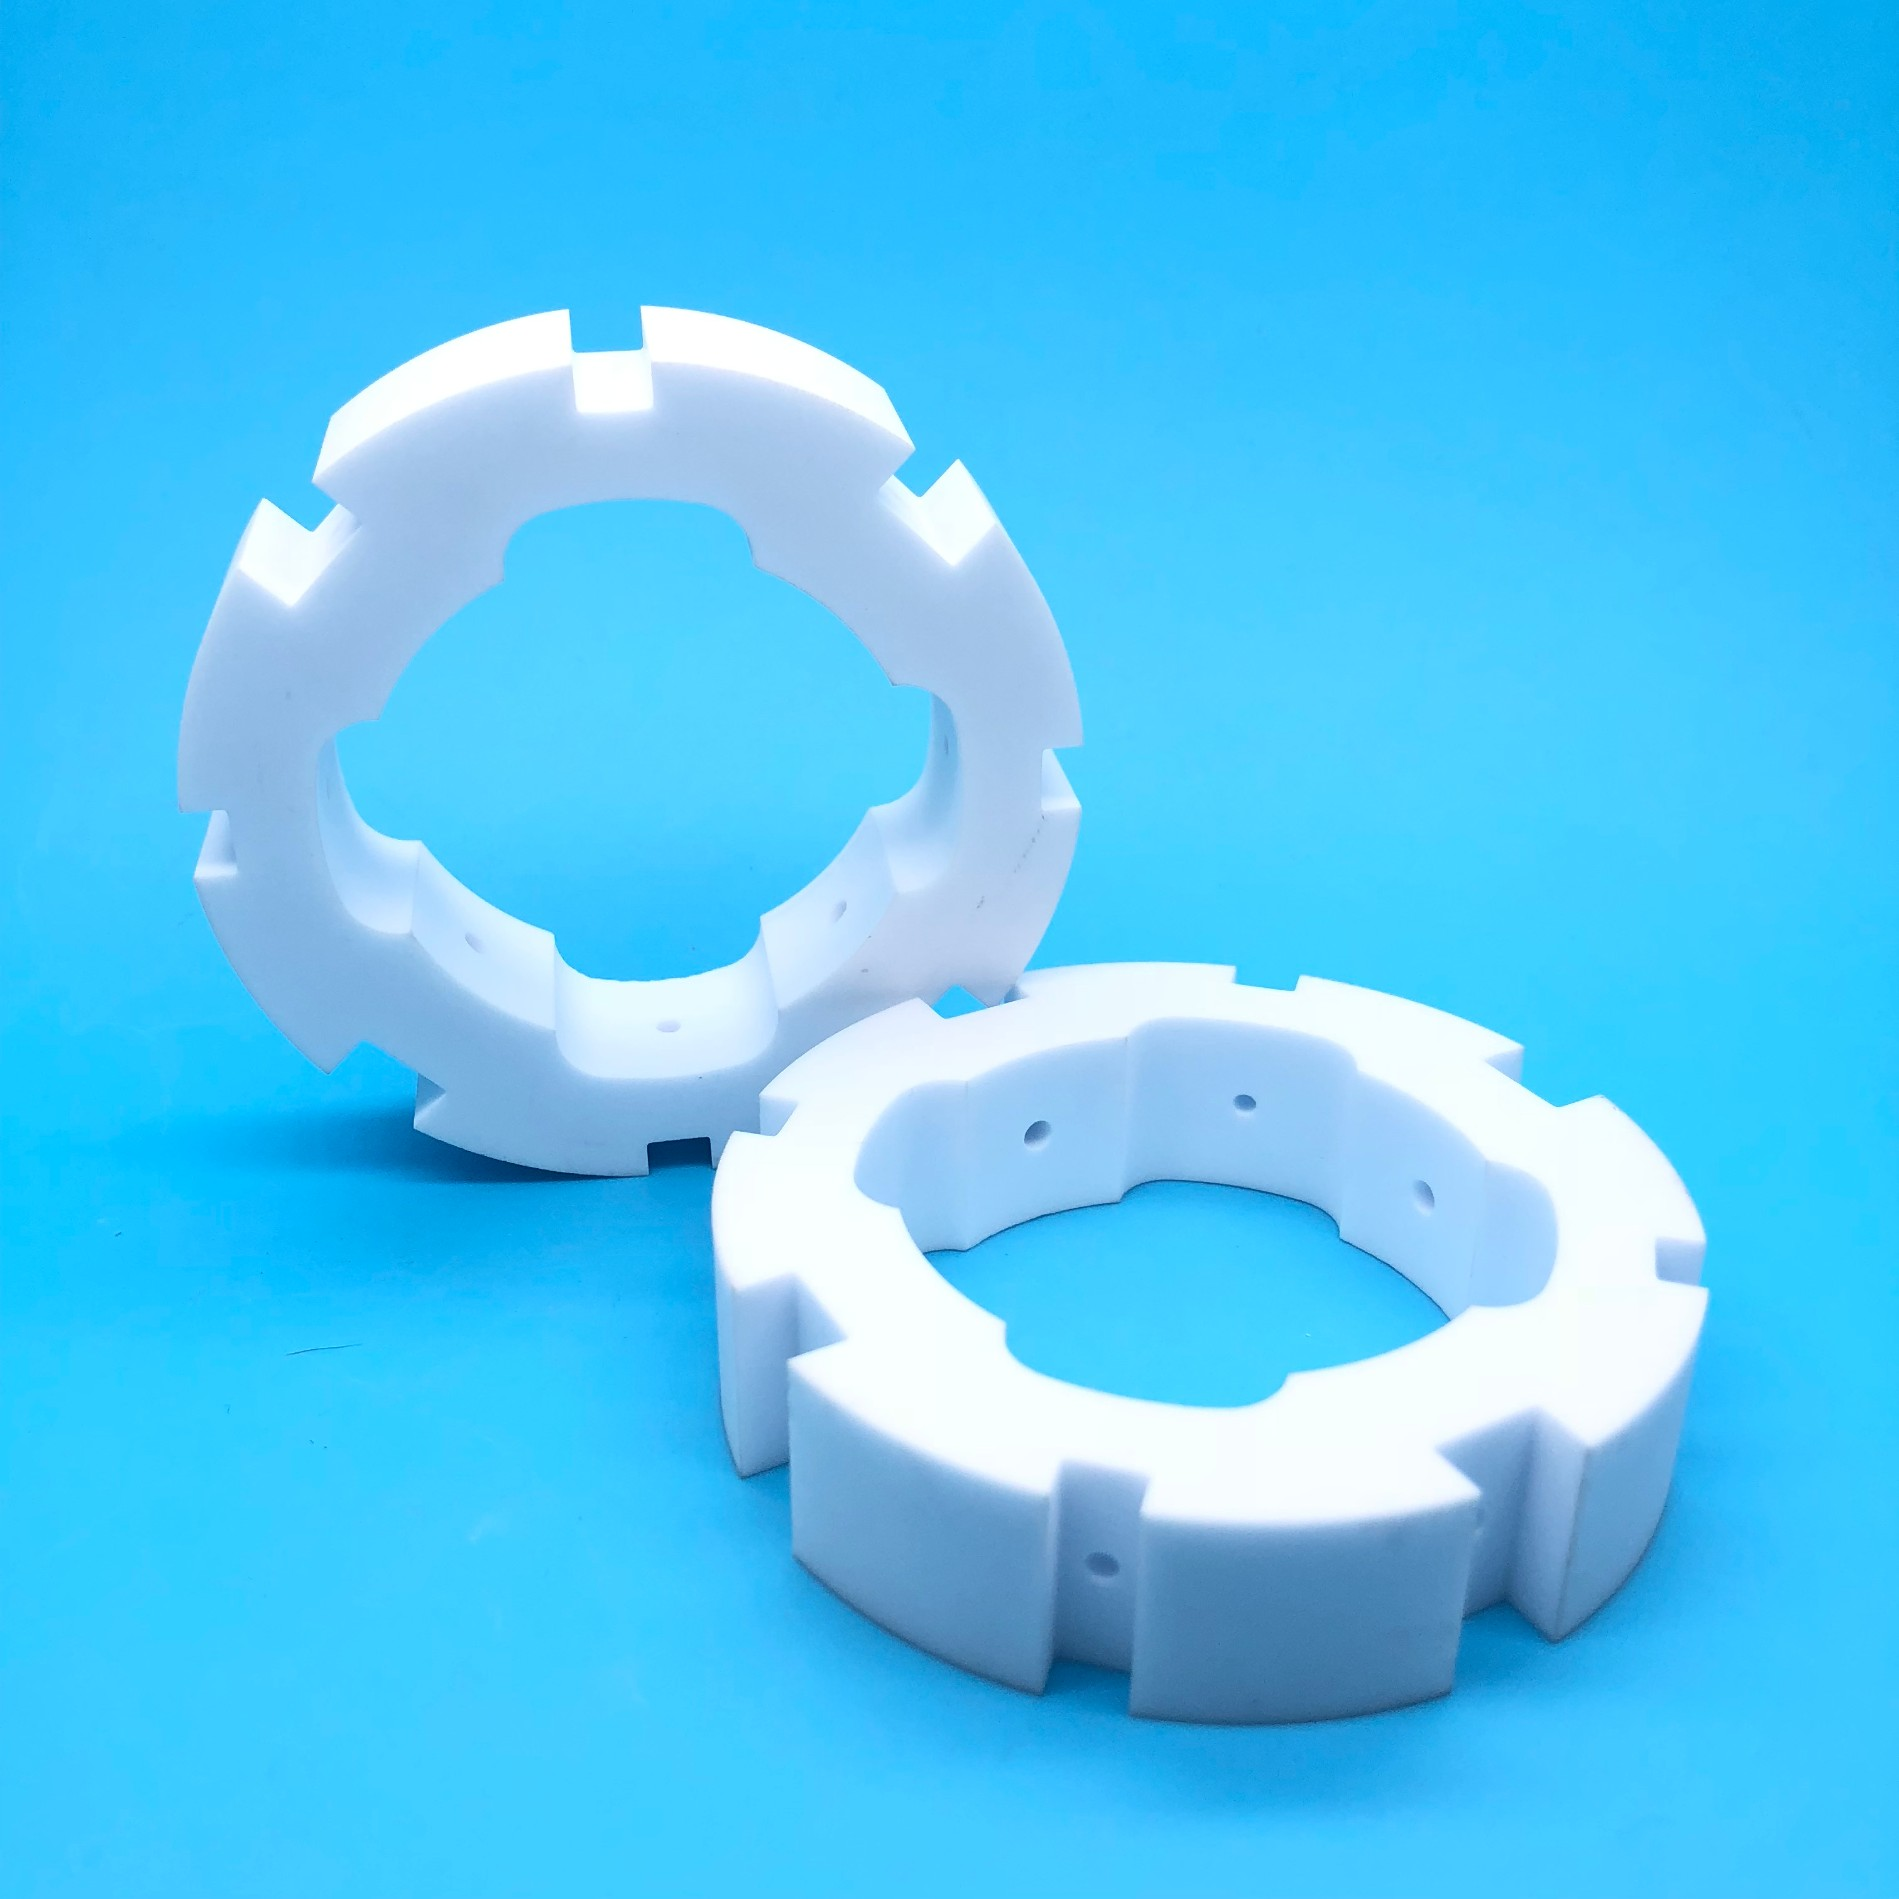 Zirconia Ceramic Components For Can Making Manufacturers, Zirconia Ceramic Components For Can Making Factory, Supply Zirconia Ceramic Components For Can Making